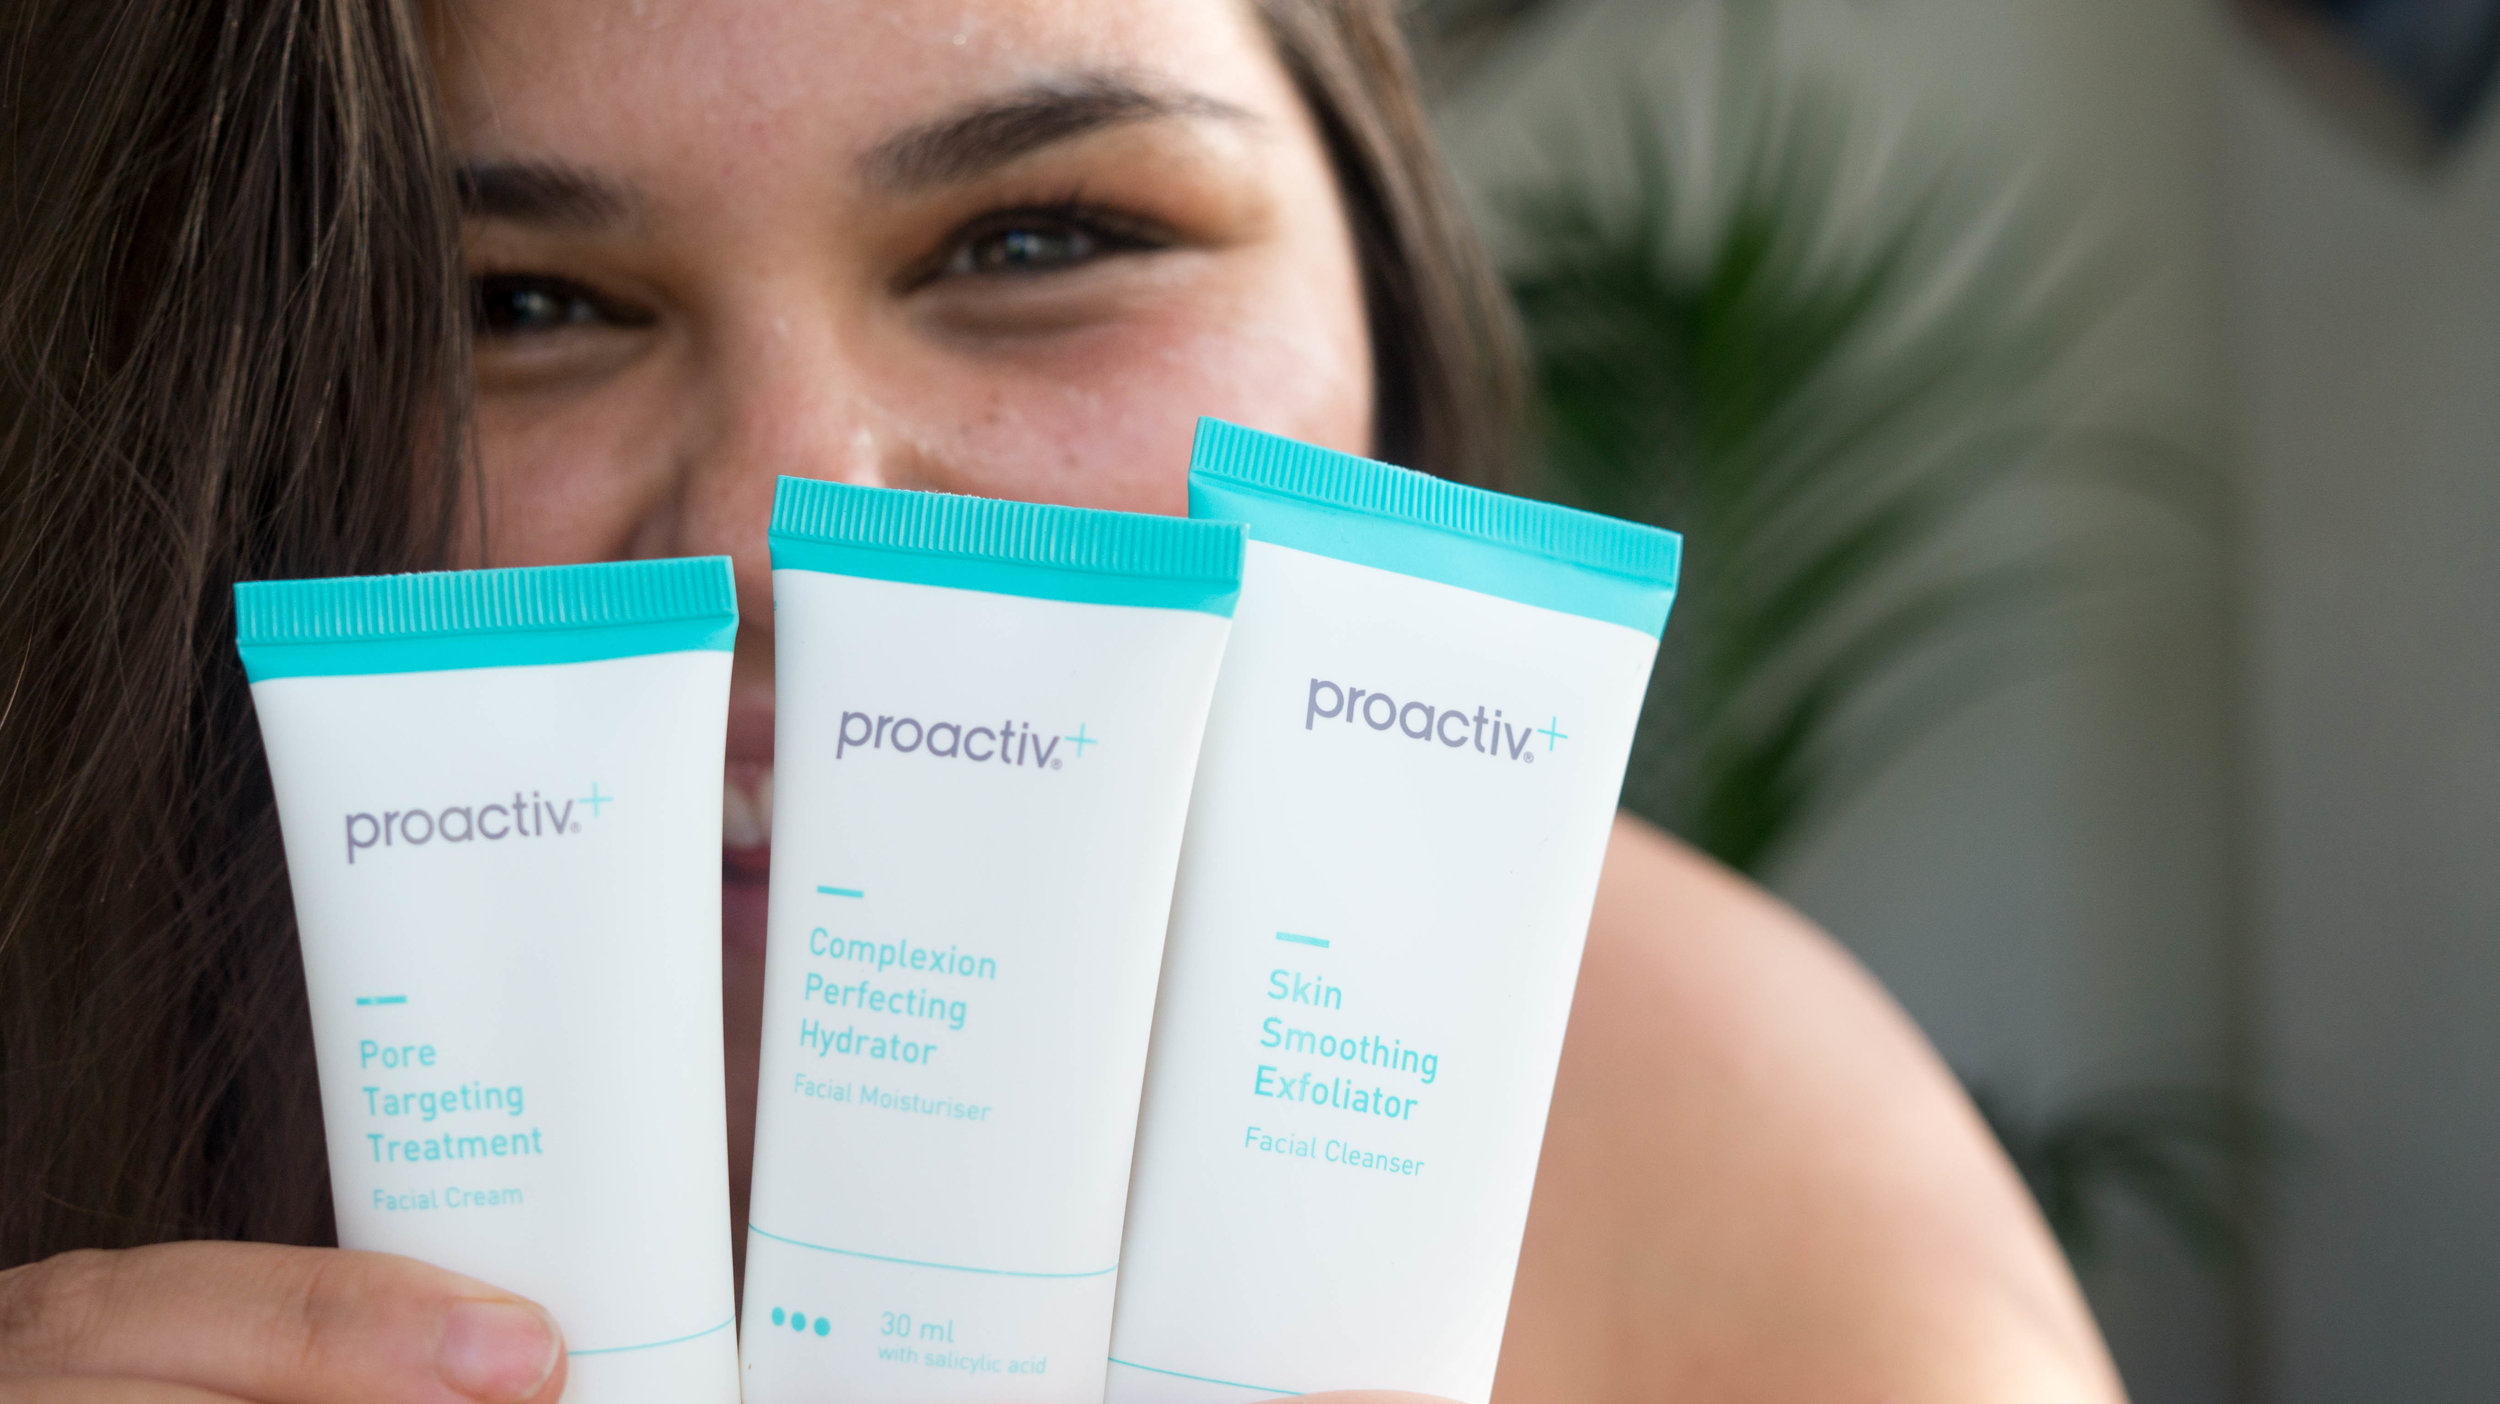 Proactiv+ three step skincare